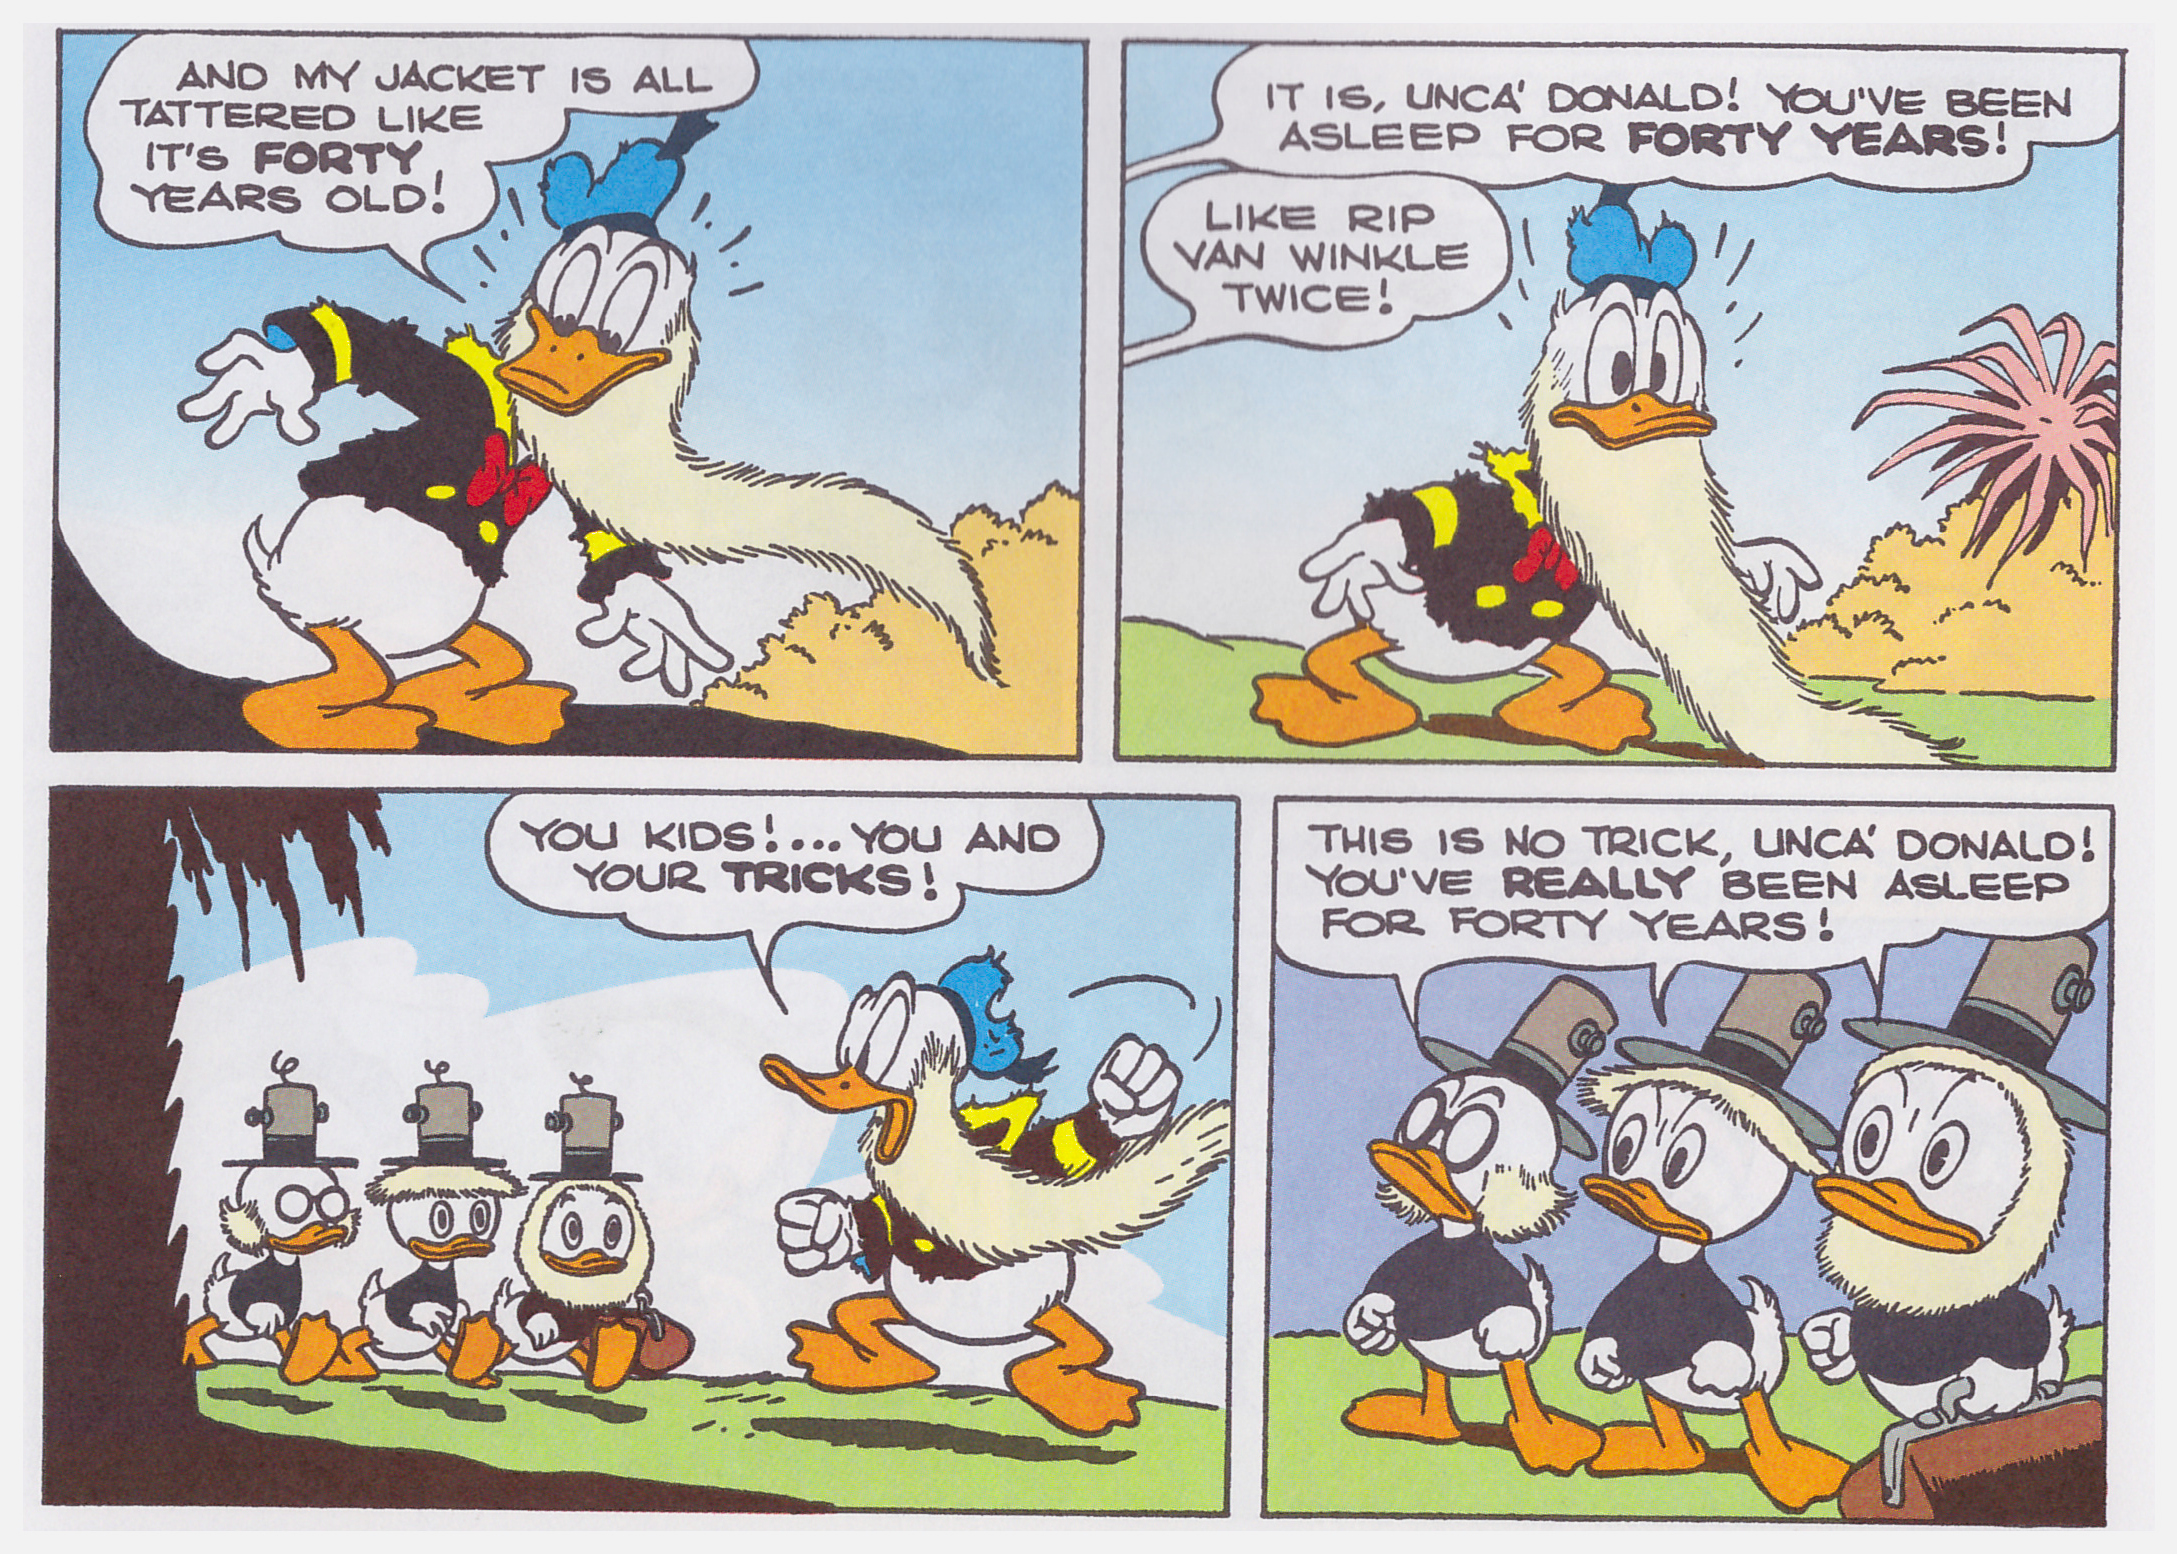 Walt Disney Comics and Stories by Carl Barks vol 17 review